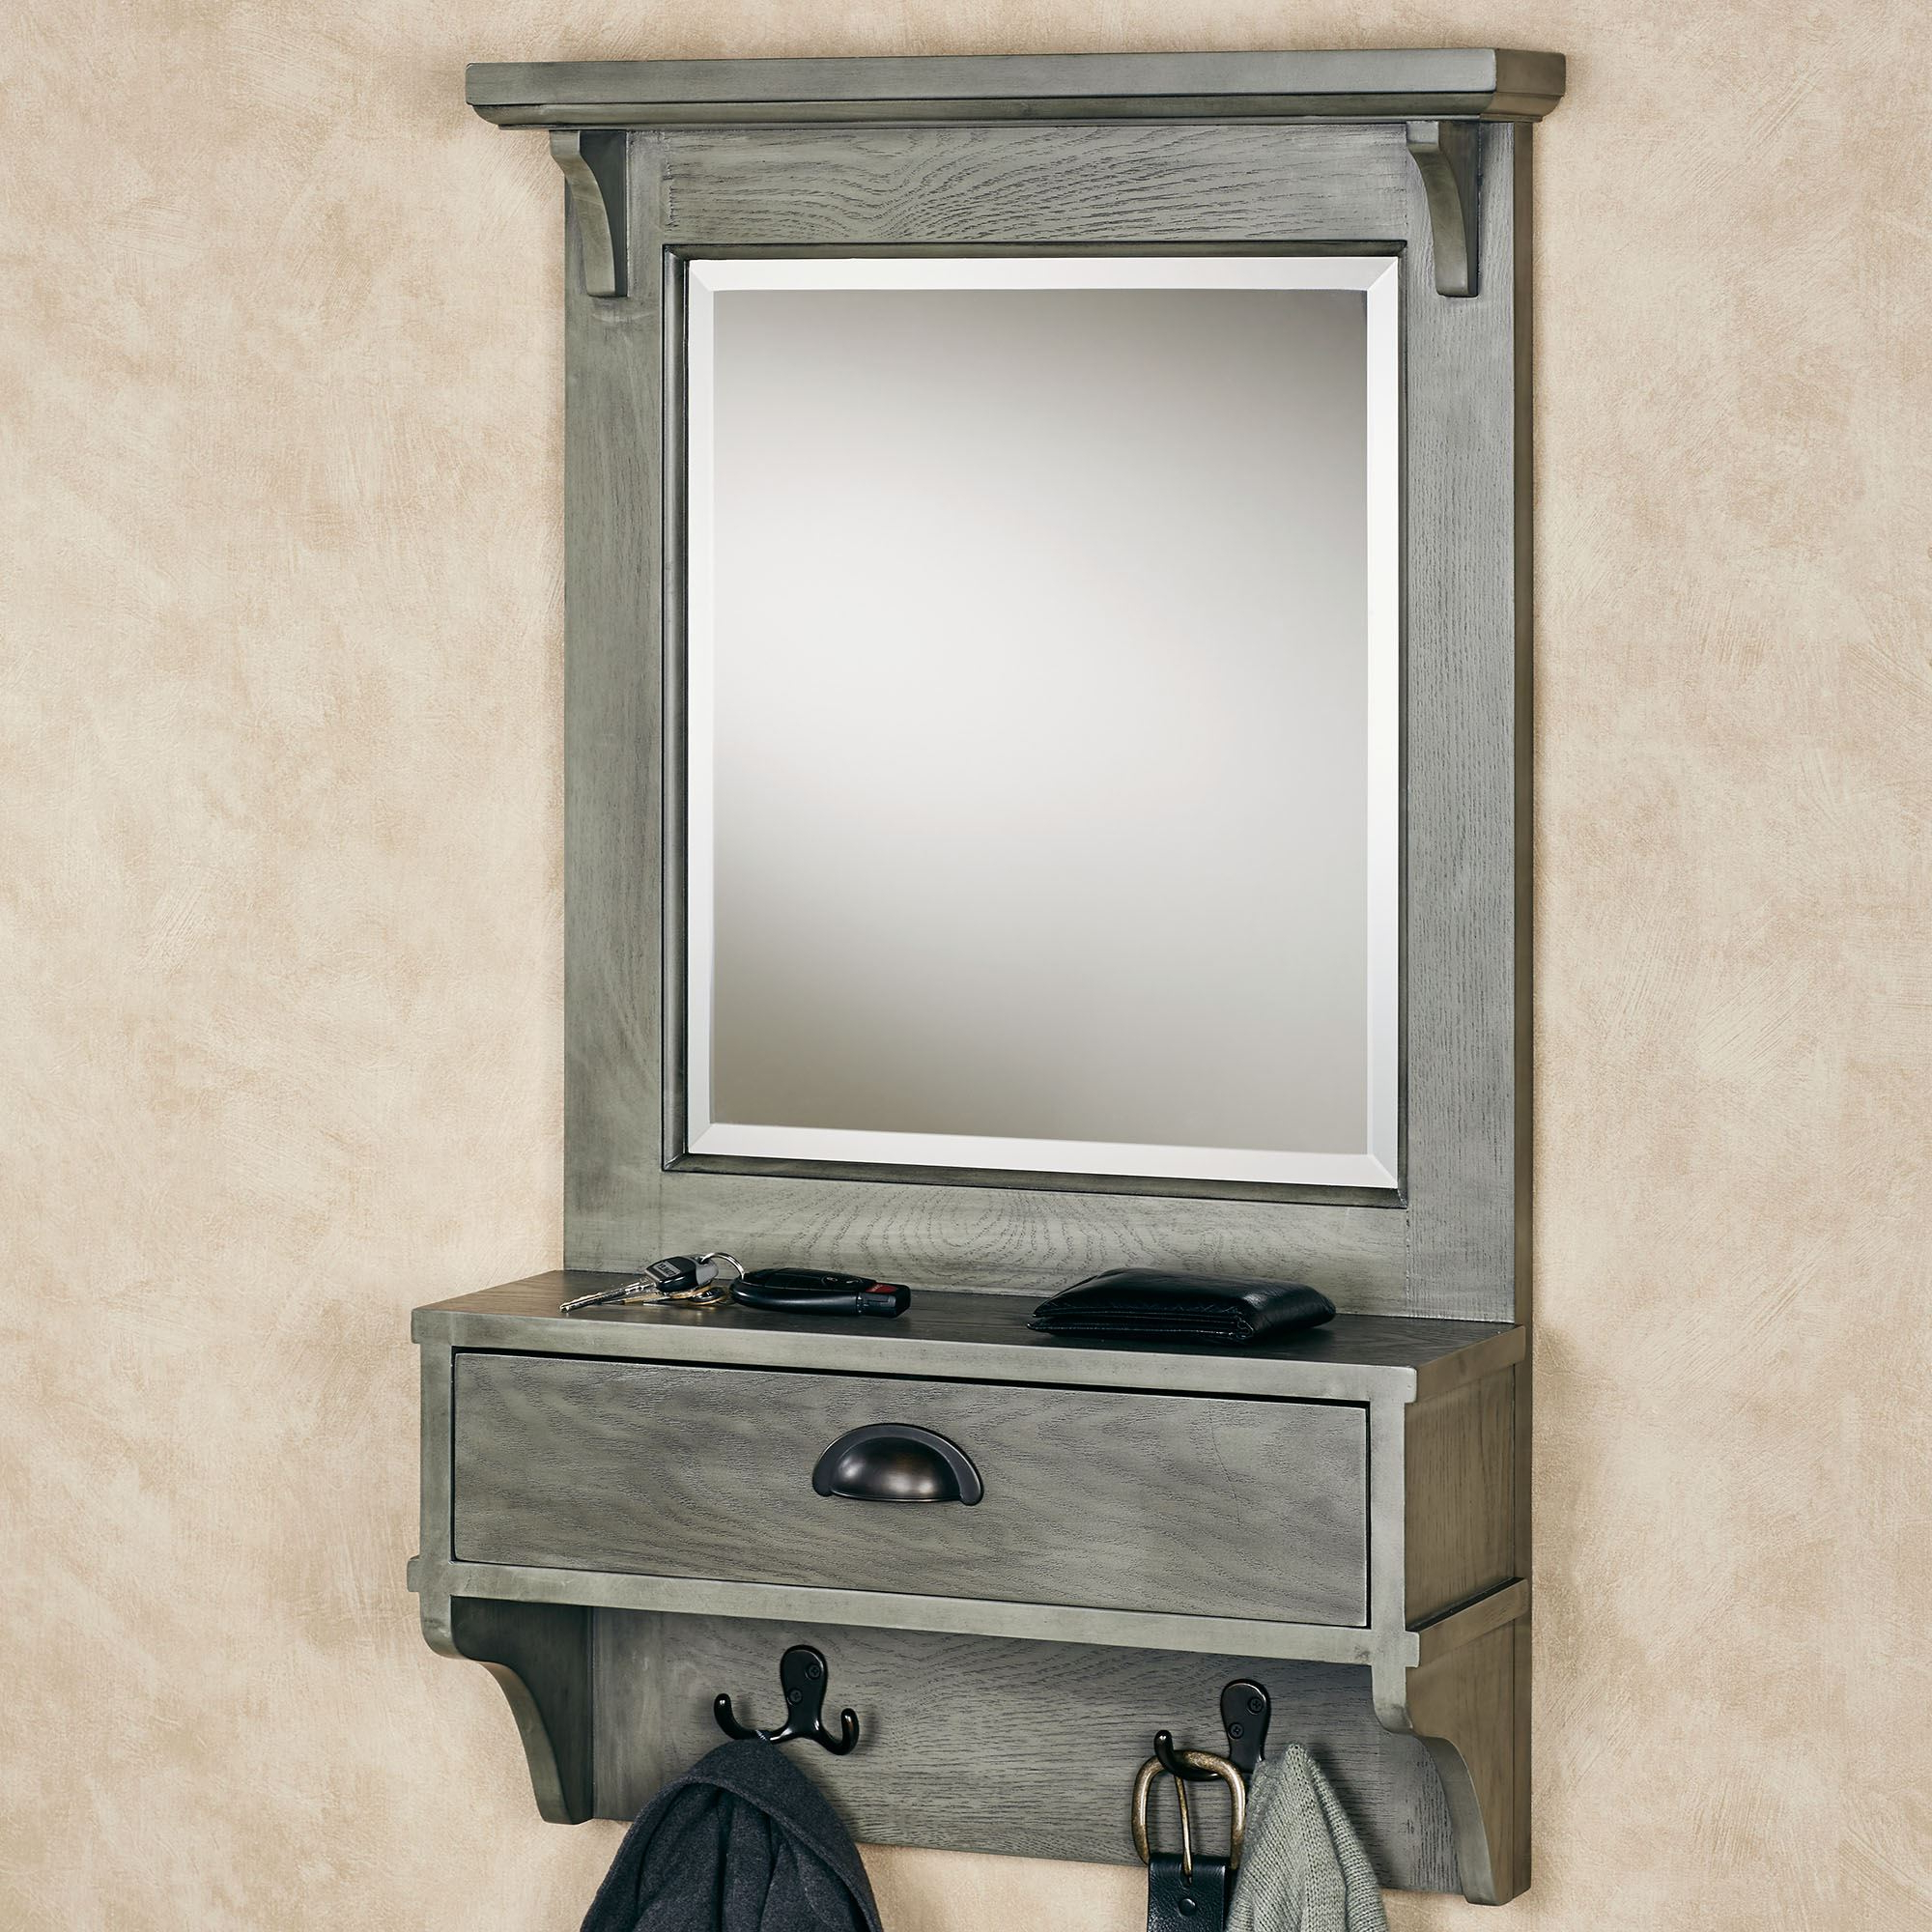 Wall Mirrors With Hooks And Shelf In Well Known Karter Gray Mirrored Wall Shelf With Drawer And Hooks (View 11 of 20)